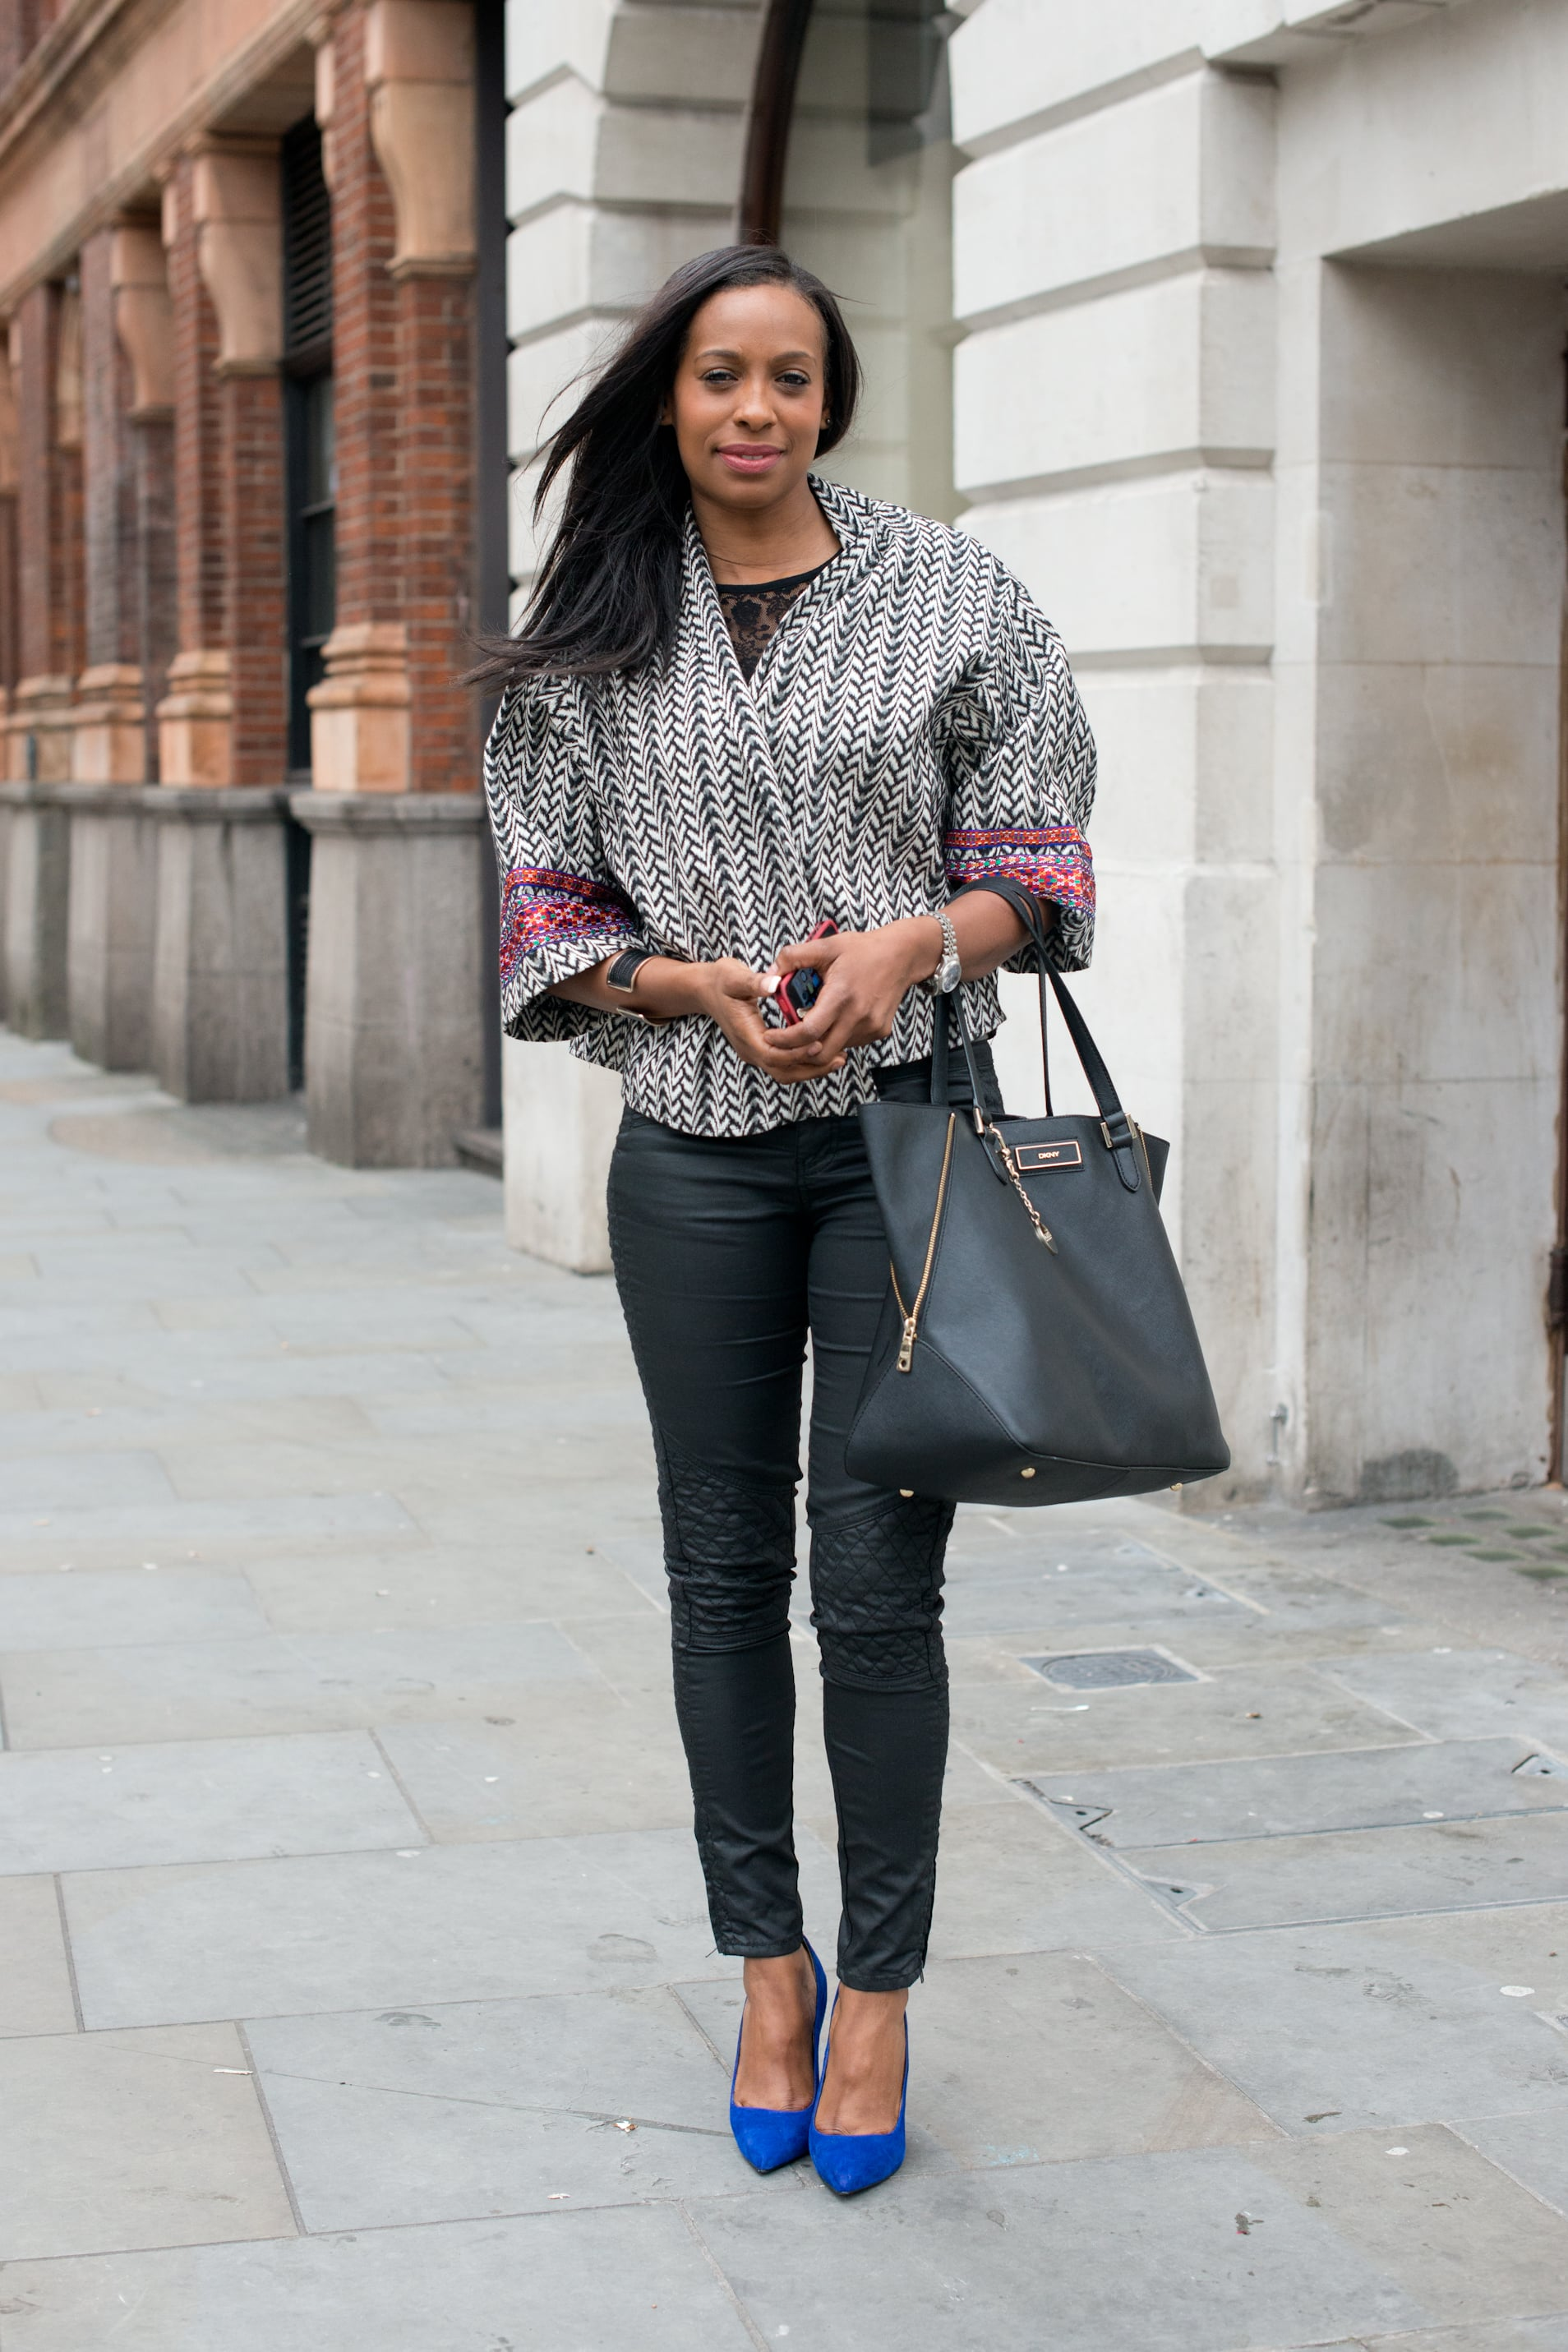 An eclectic print and blue suede heels brightened up her black pants and tote.